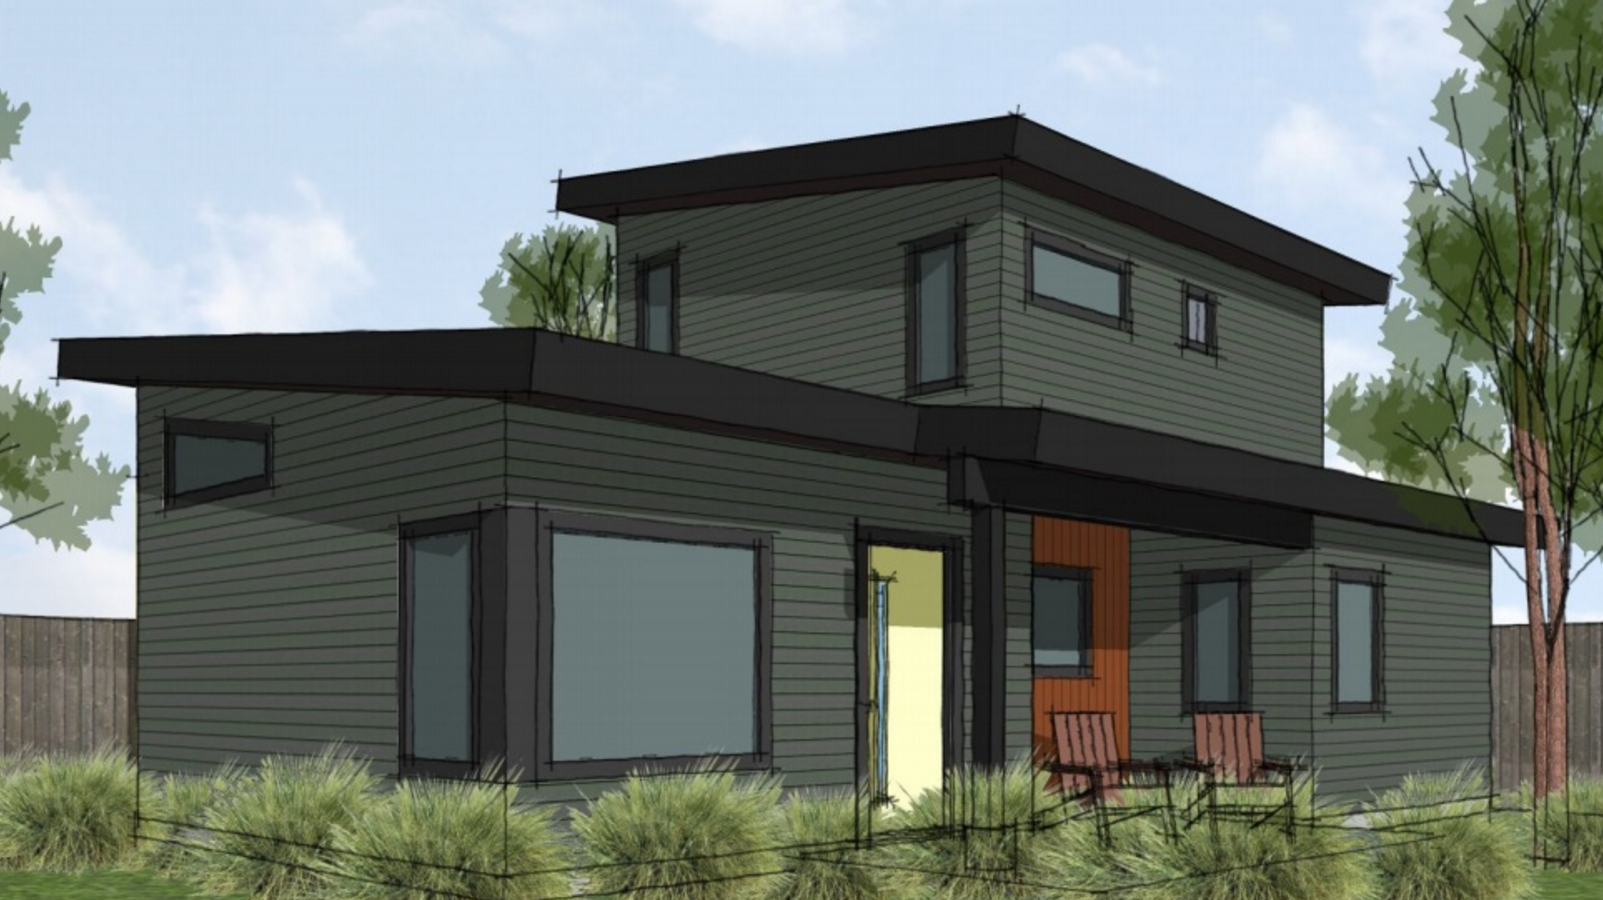 BALLARD DADU   (NET ZERO)  BALLARD, SEATTLE, WA  This project will be constructed to Five Star Built Green standards and will be net zero, producing as much energy as it consumes. The Ballard DADU (detached accessory dwelling unit) will feature an energy efficient building envelope, radiant floor heating, 6KW of solar power, SIP roof panels, and triple-pane windows. Abode is looking forward to breaking ground on this exciting net zero cottage in spring 2016.